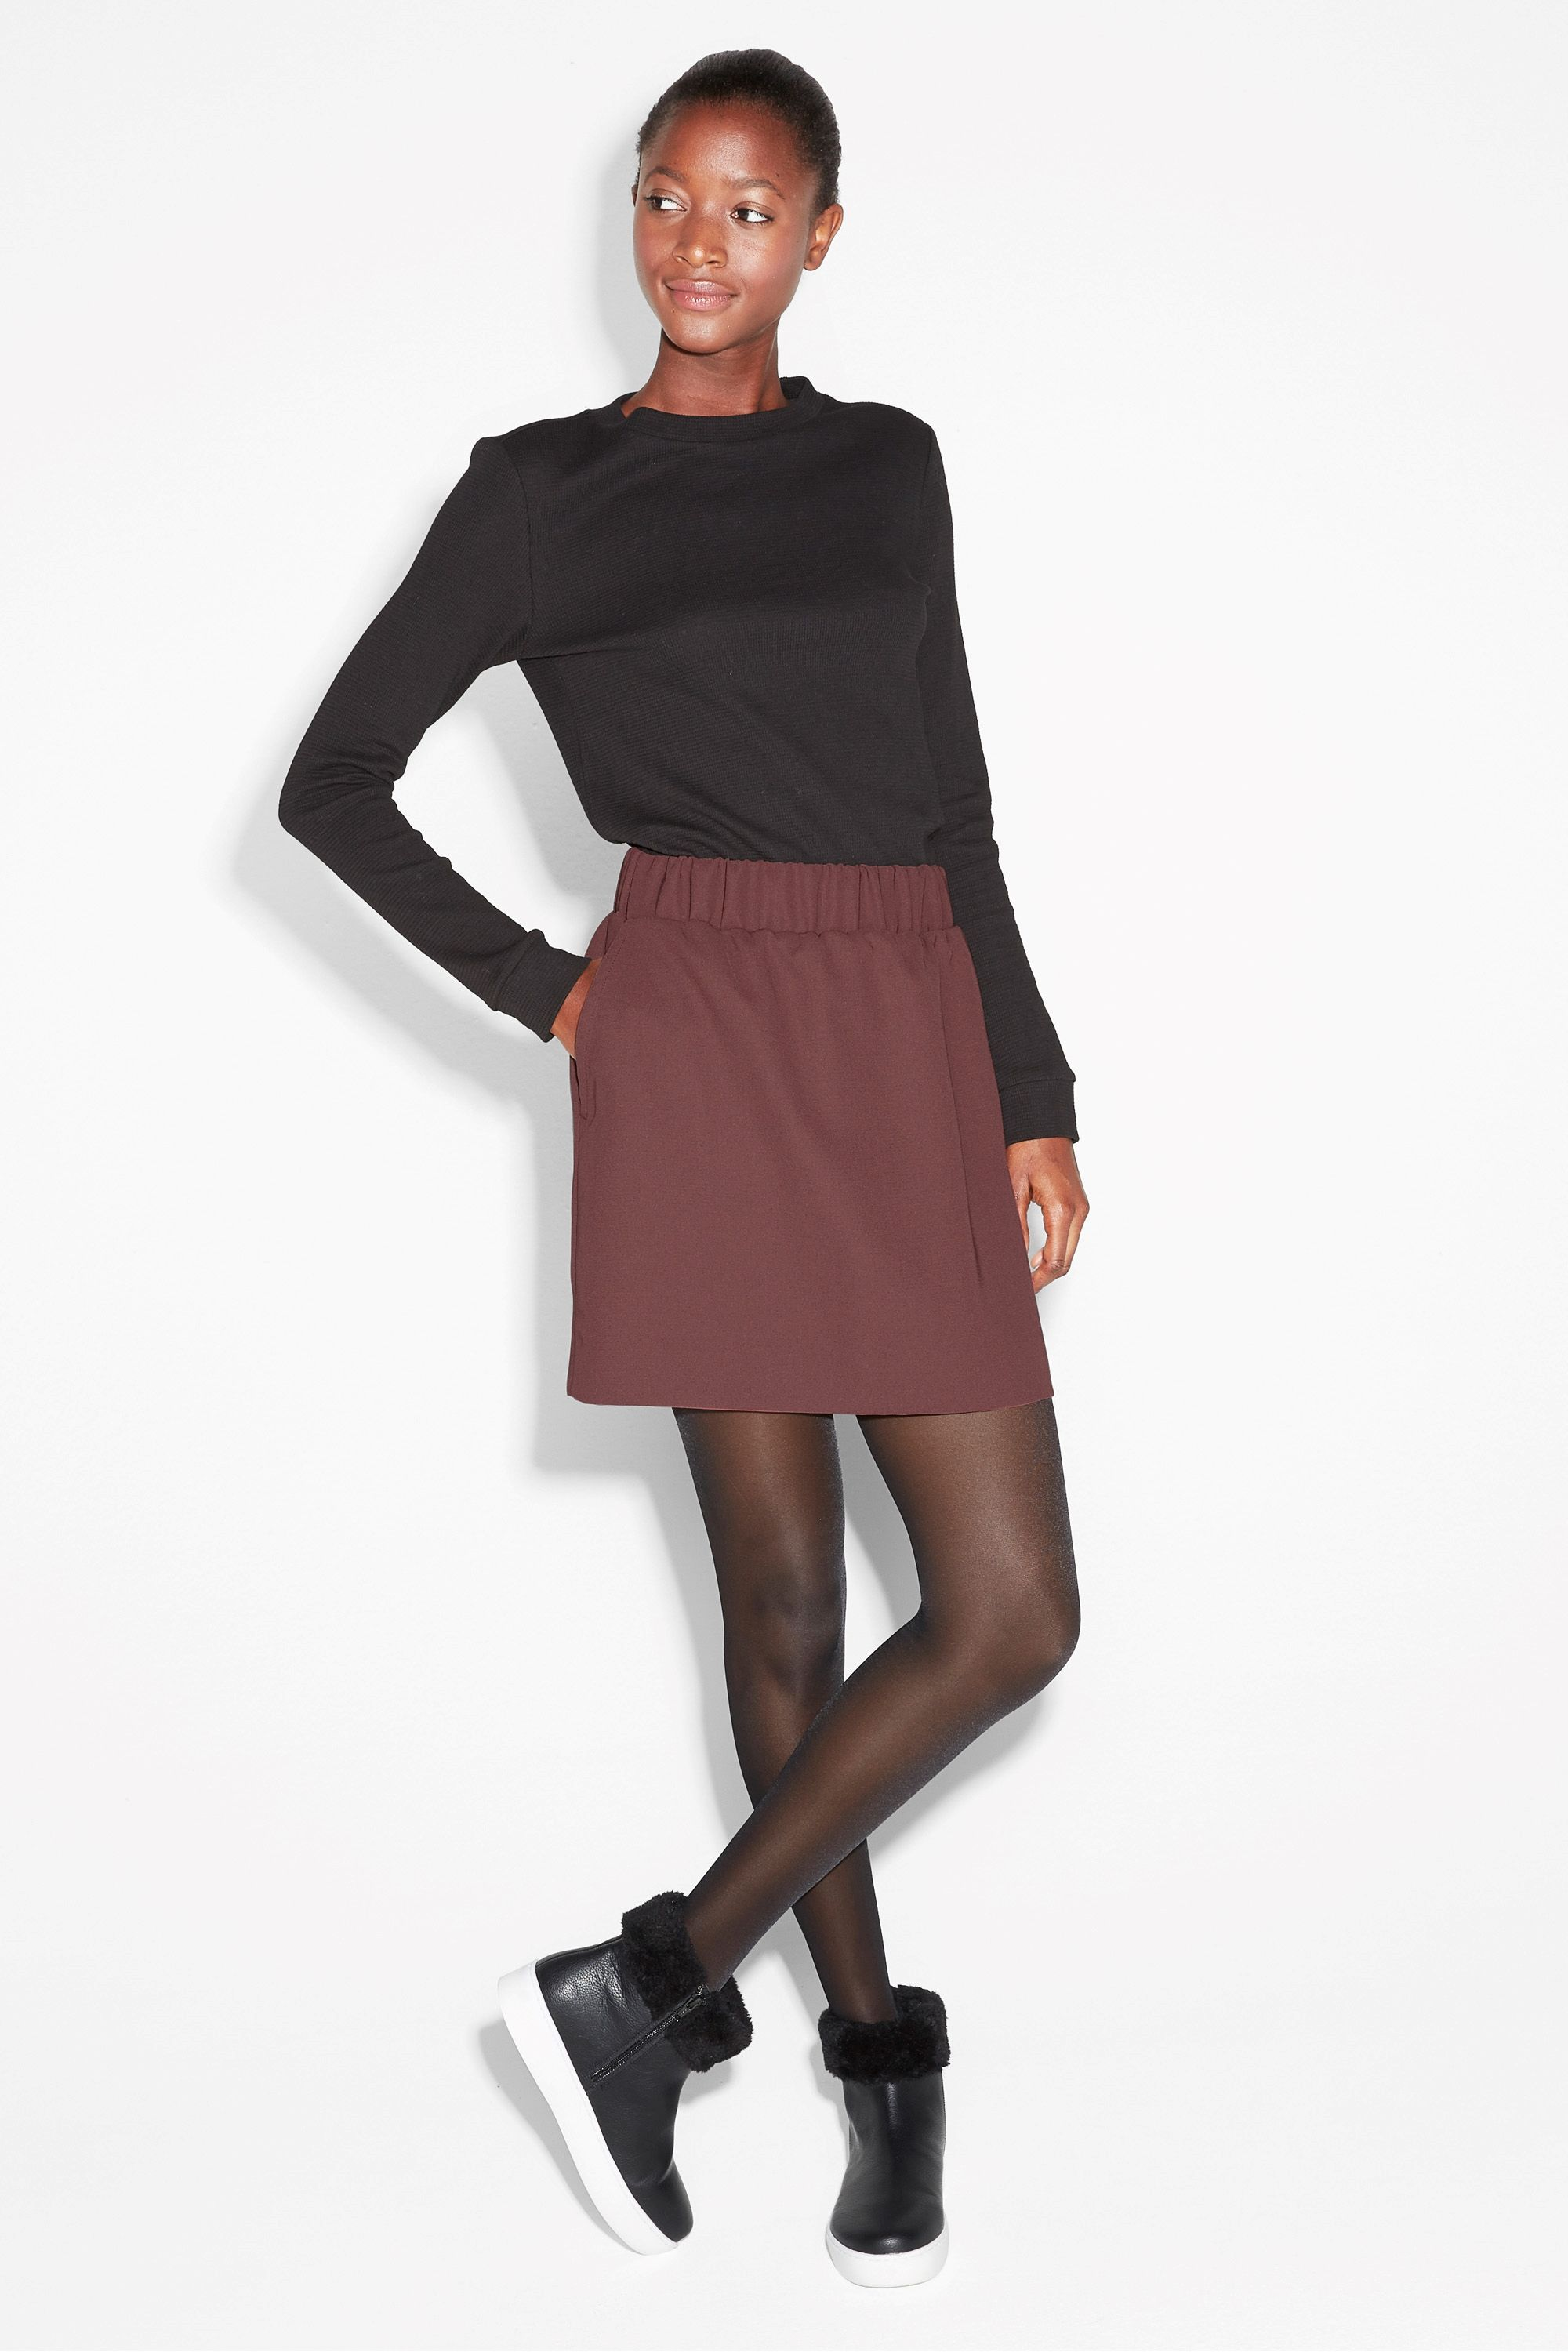 A short skirt with a ruched elastic waist and slant pockets, ready to be styled every which way.